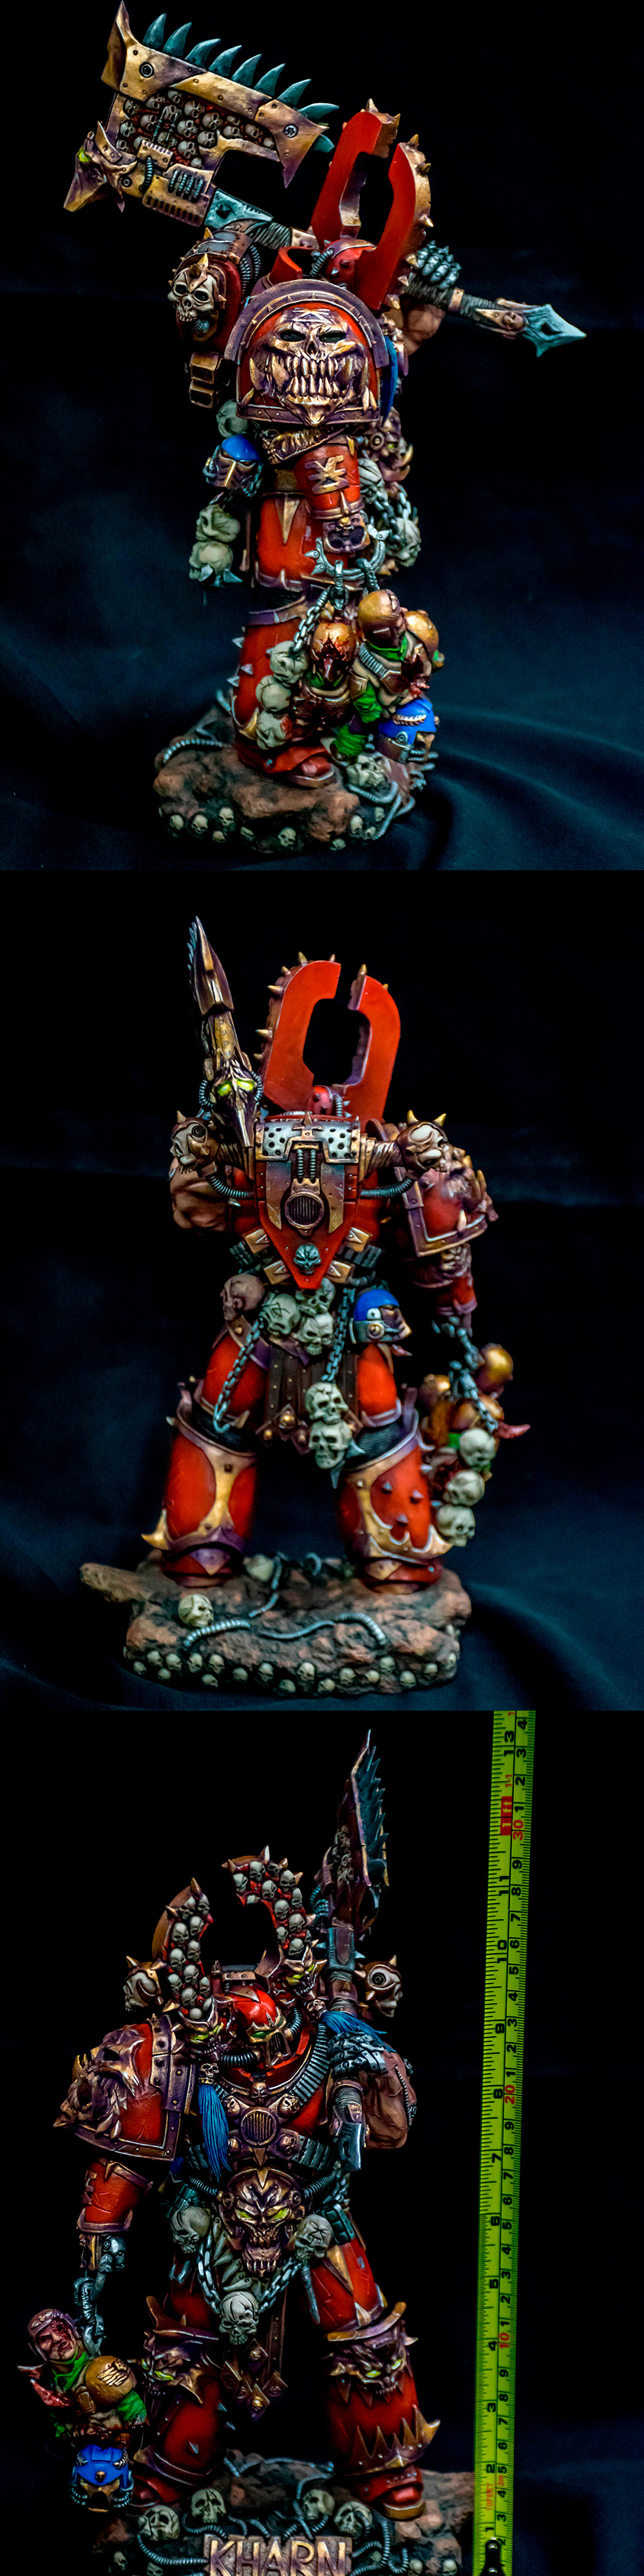 Kharn the Betrayer Large Scale 33 cm